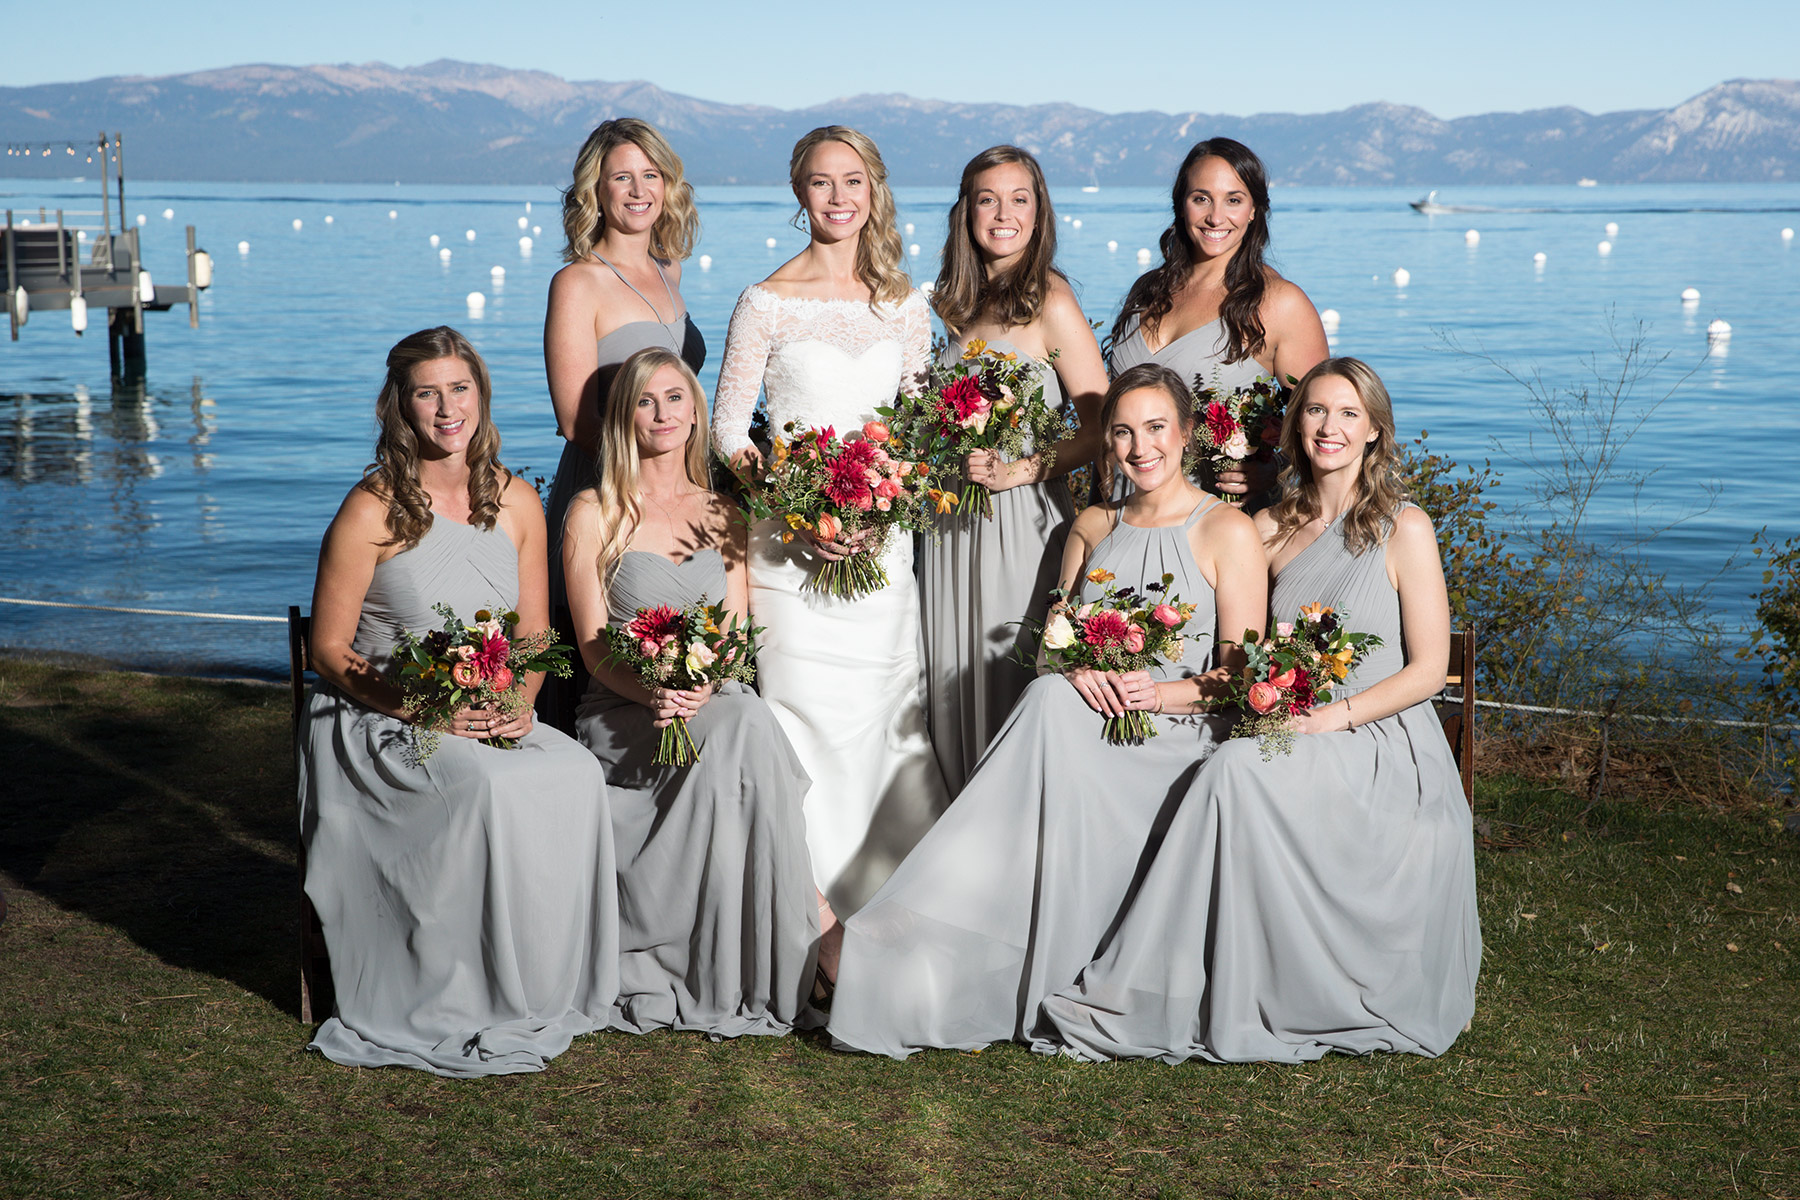 group-shot-wedding-Tahoe-bride-and-bridesmaids